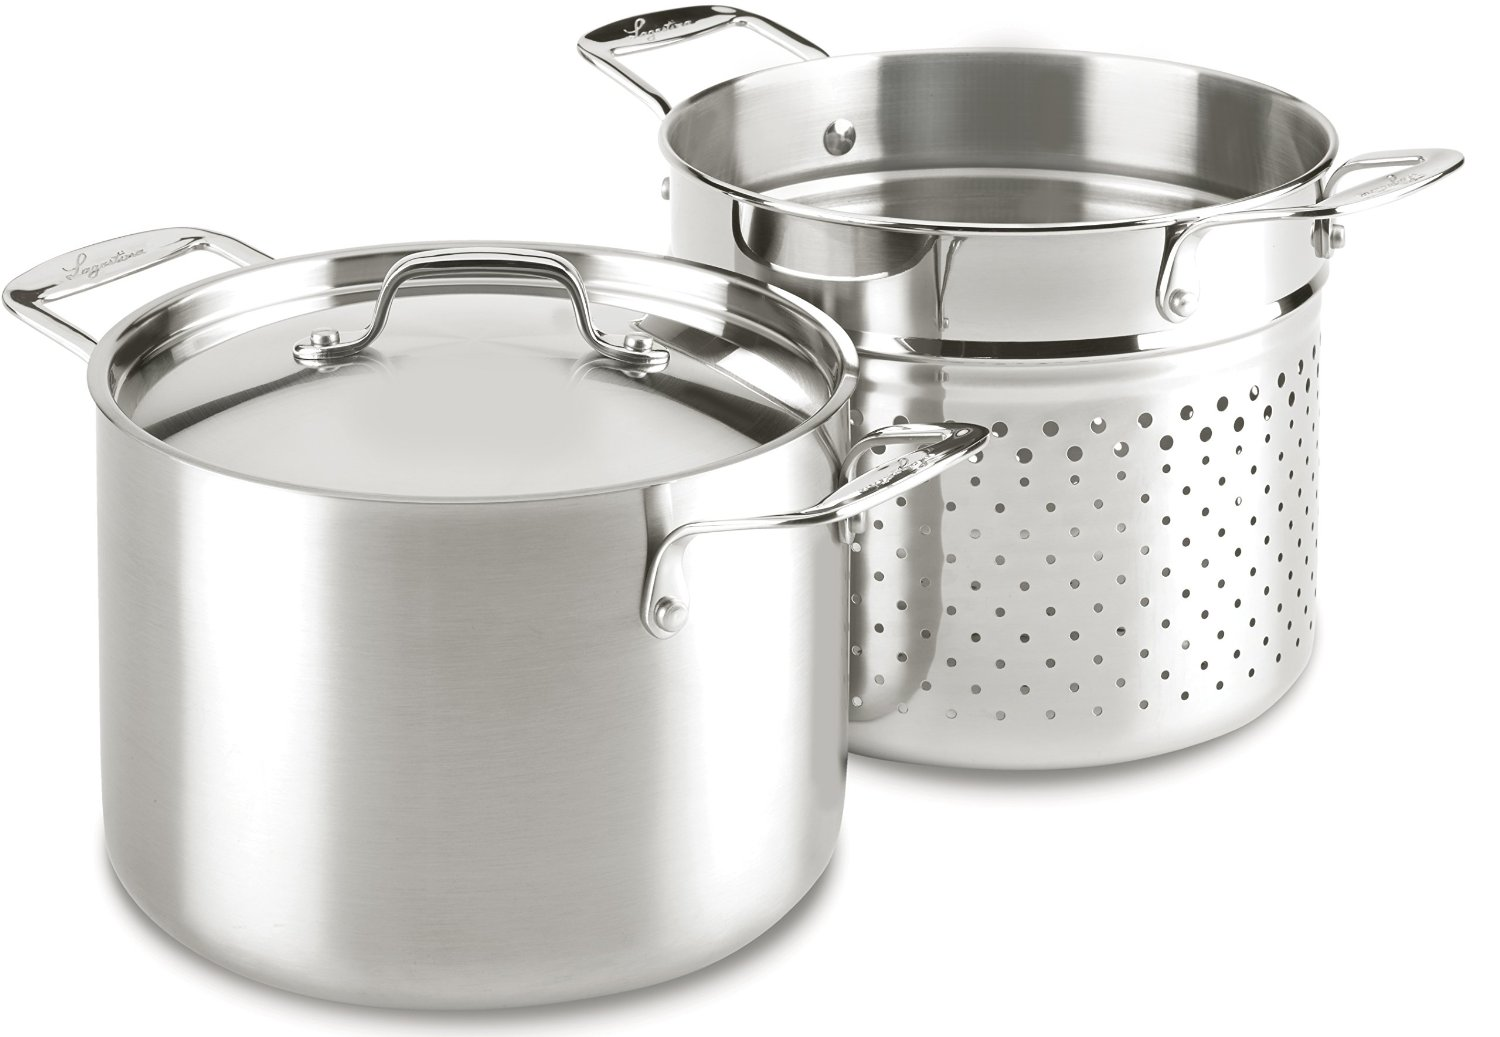 Lagostina quart stainless steel pasta pot w strainer